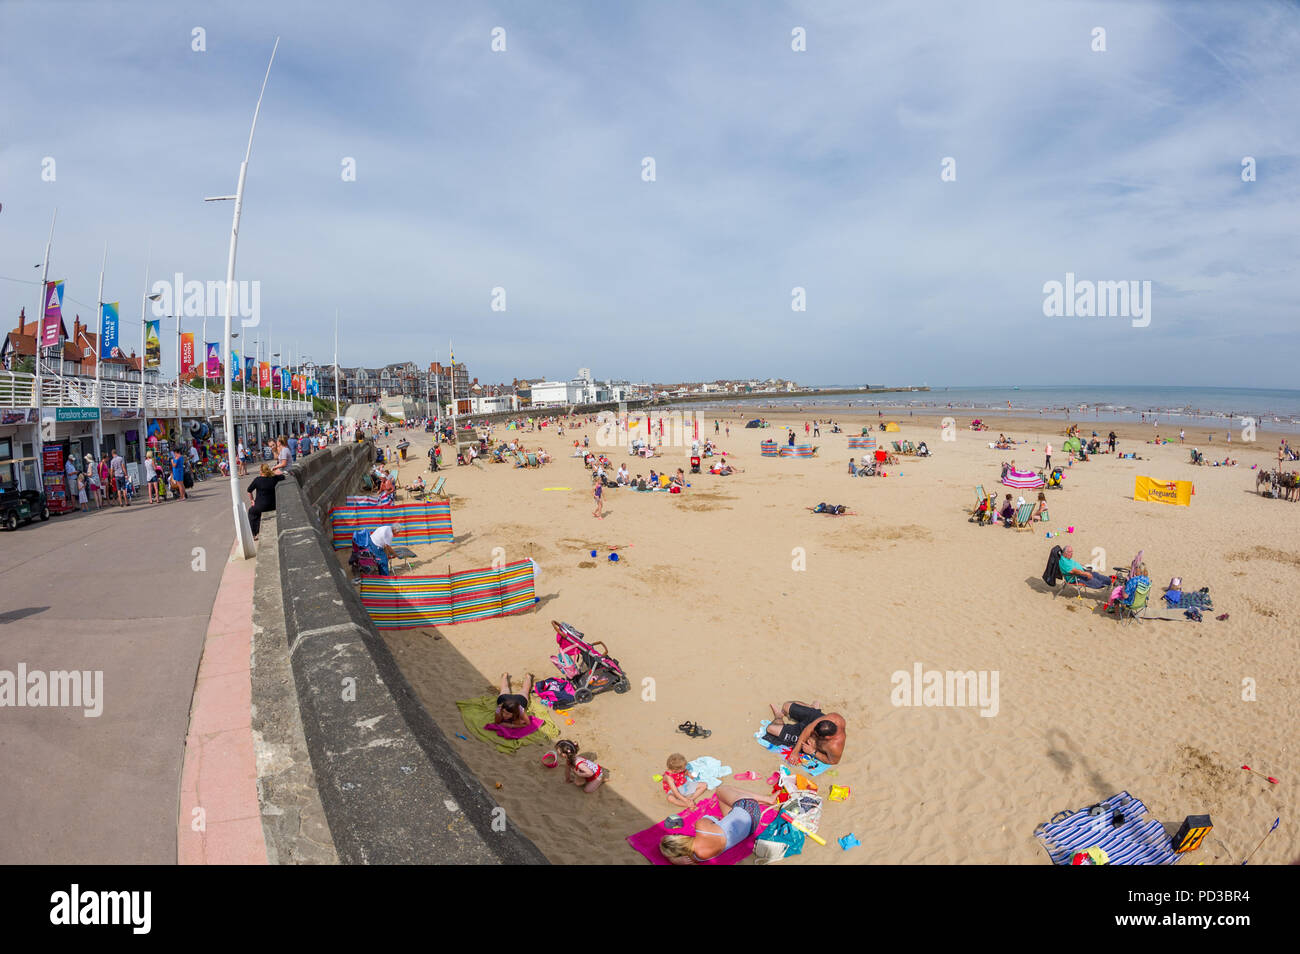 UK. Weather. Bridlington, Yorkshire, England. 6th. August 2018.  Famlies and tourists enjoying continous the hot and sunny weather on the sandy beach at Bridlington on the North sea coast of Yorkshire. Alan Beastall/Alamy Live News - Stock Image